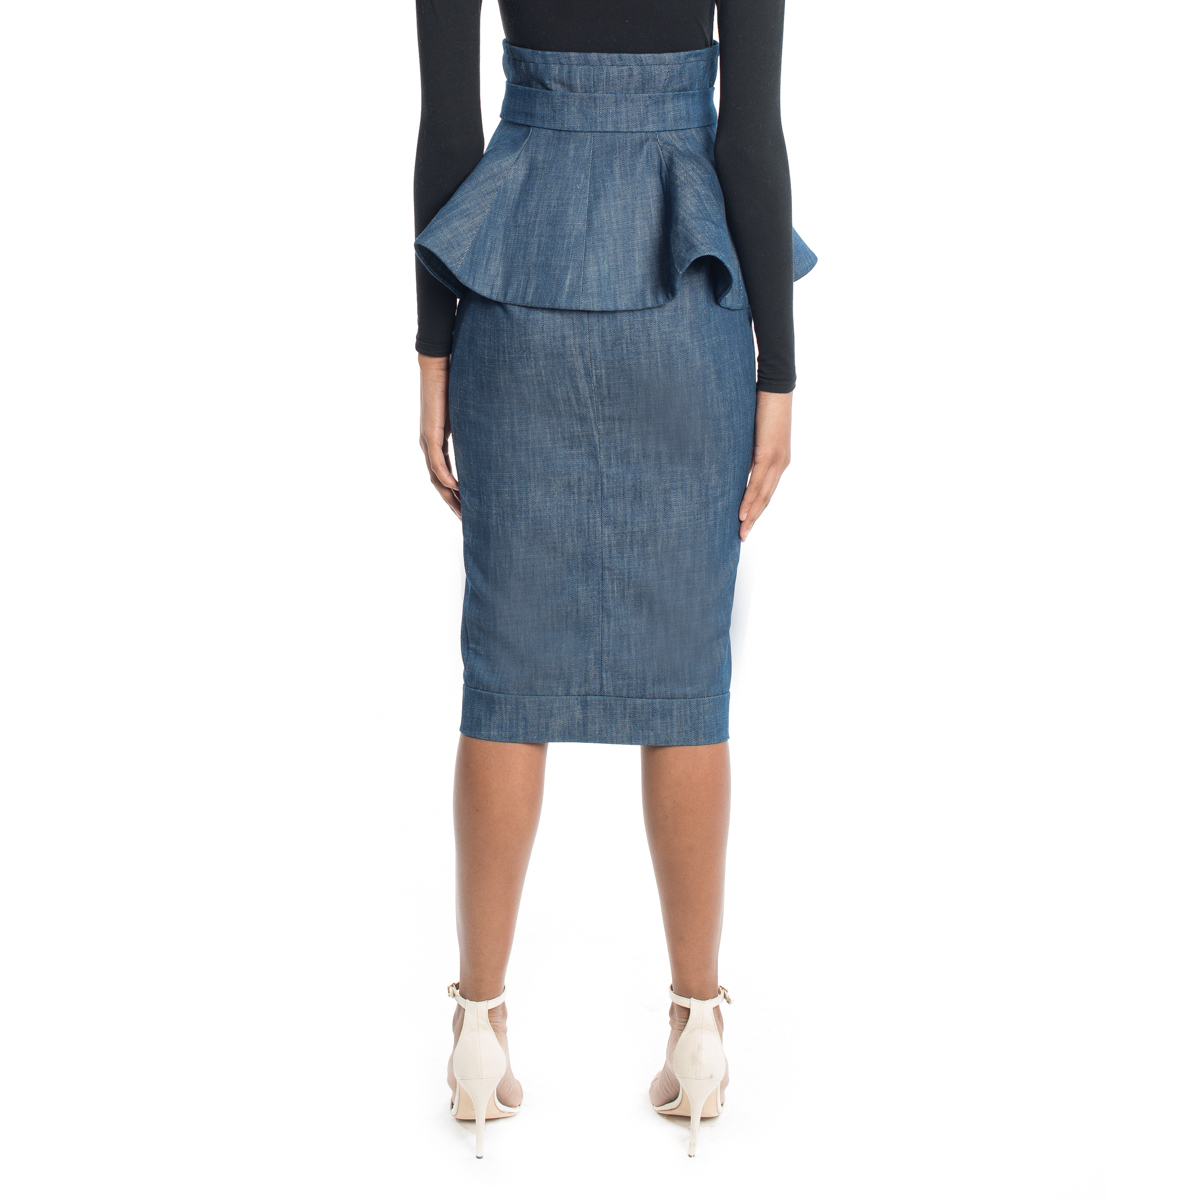 Cleopatra Peplum Pencil Skirt